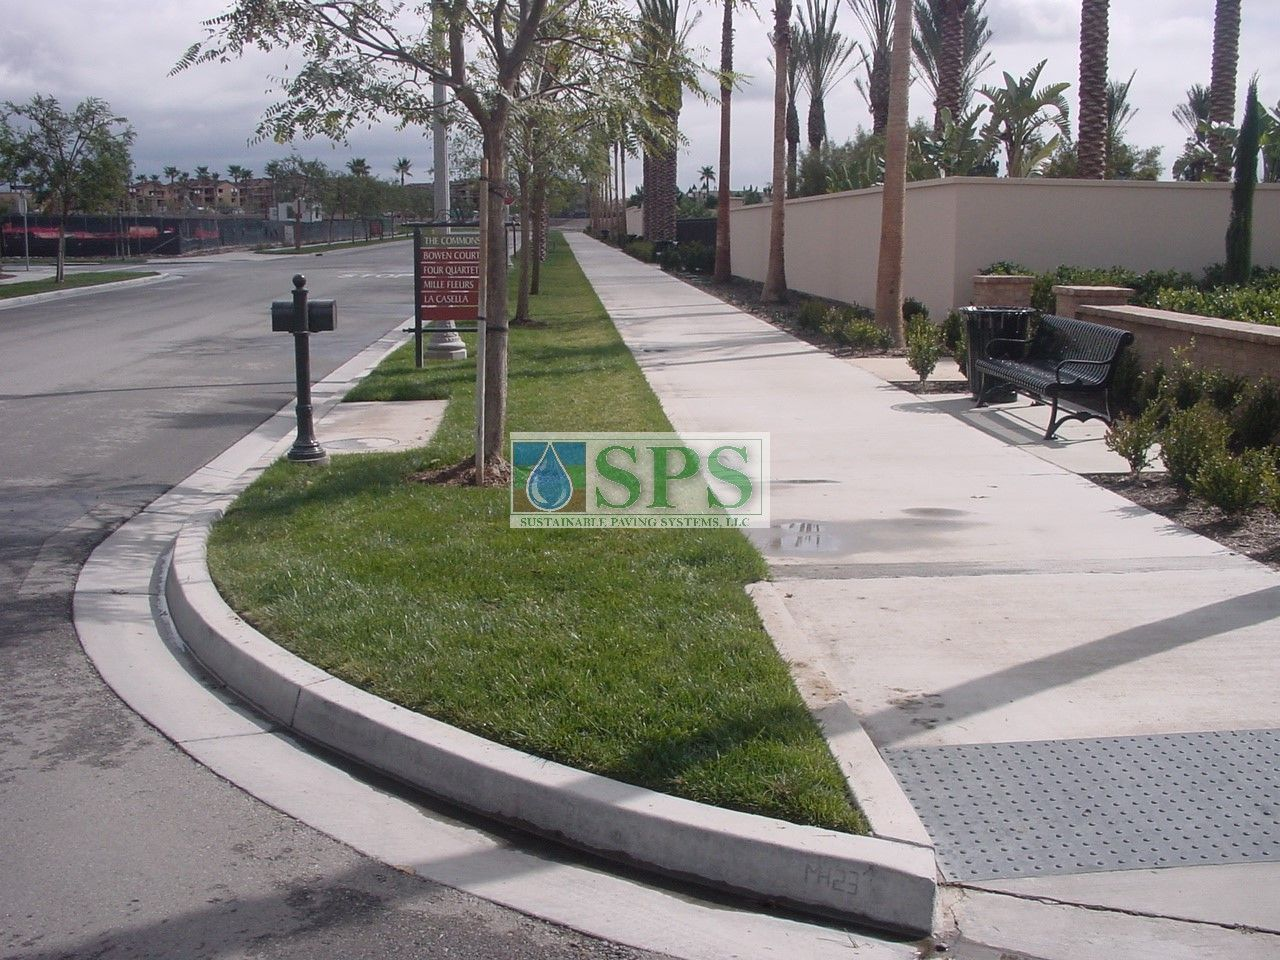 Sidewalk curbing at Woodbury Community Development in Irvine, CA, featuring Concealed Grasscrassete for Water Management and Vehicle Access.